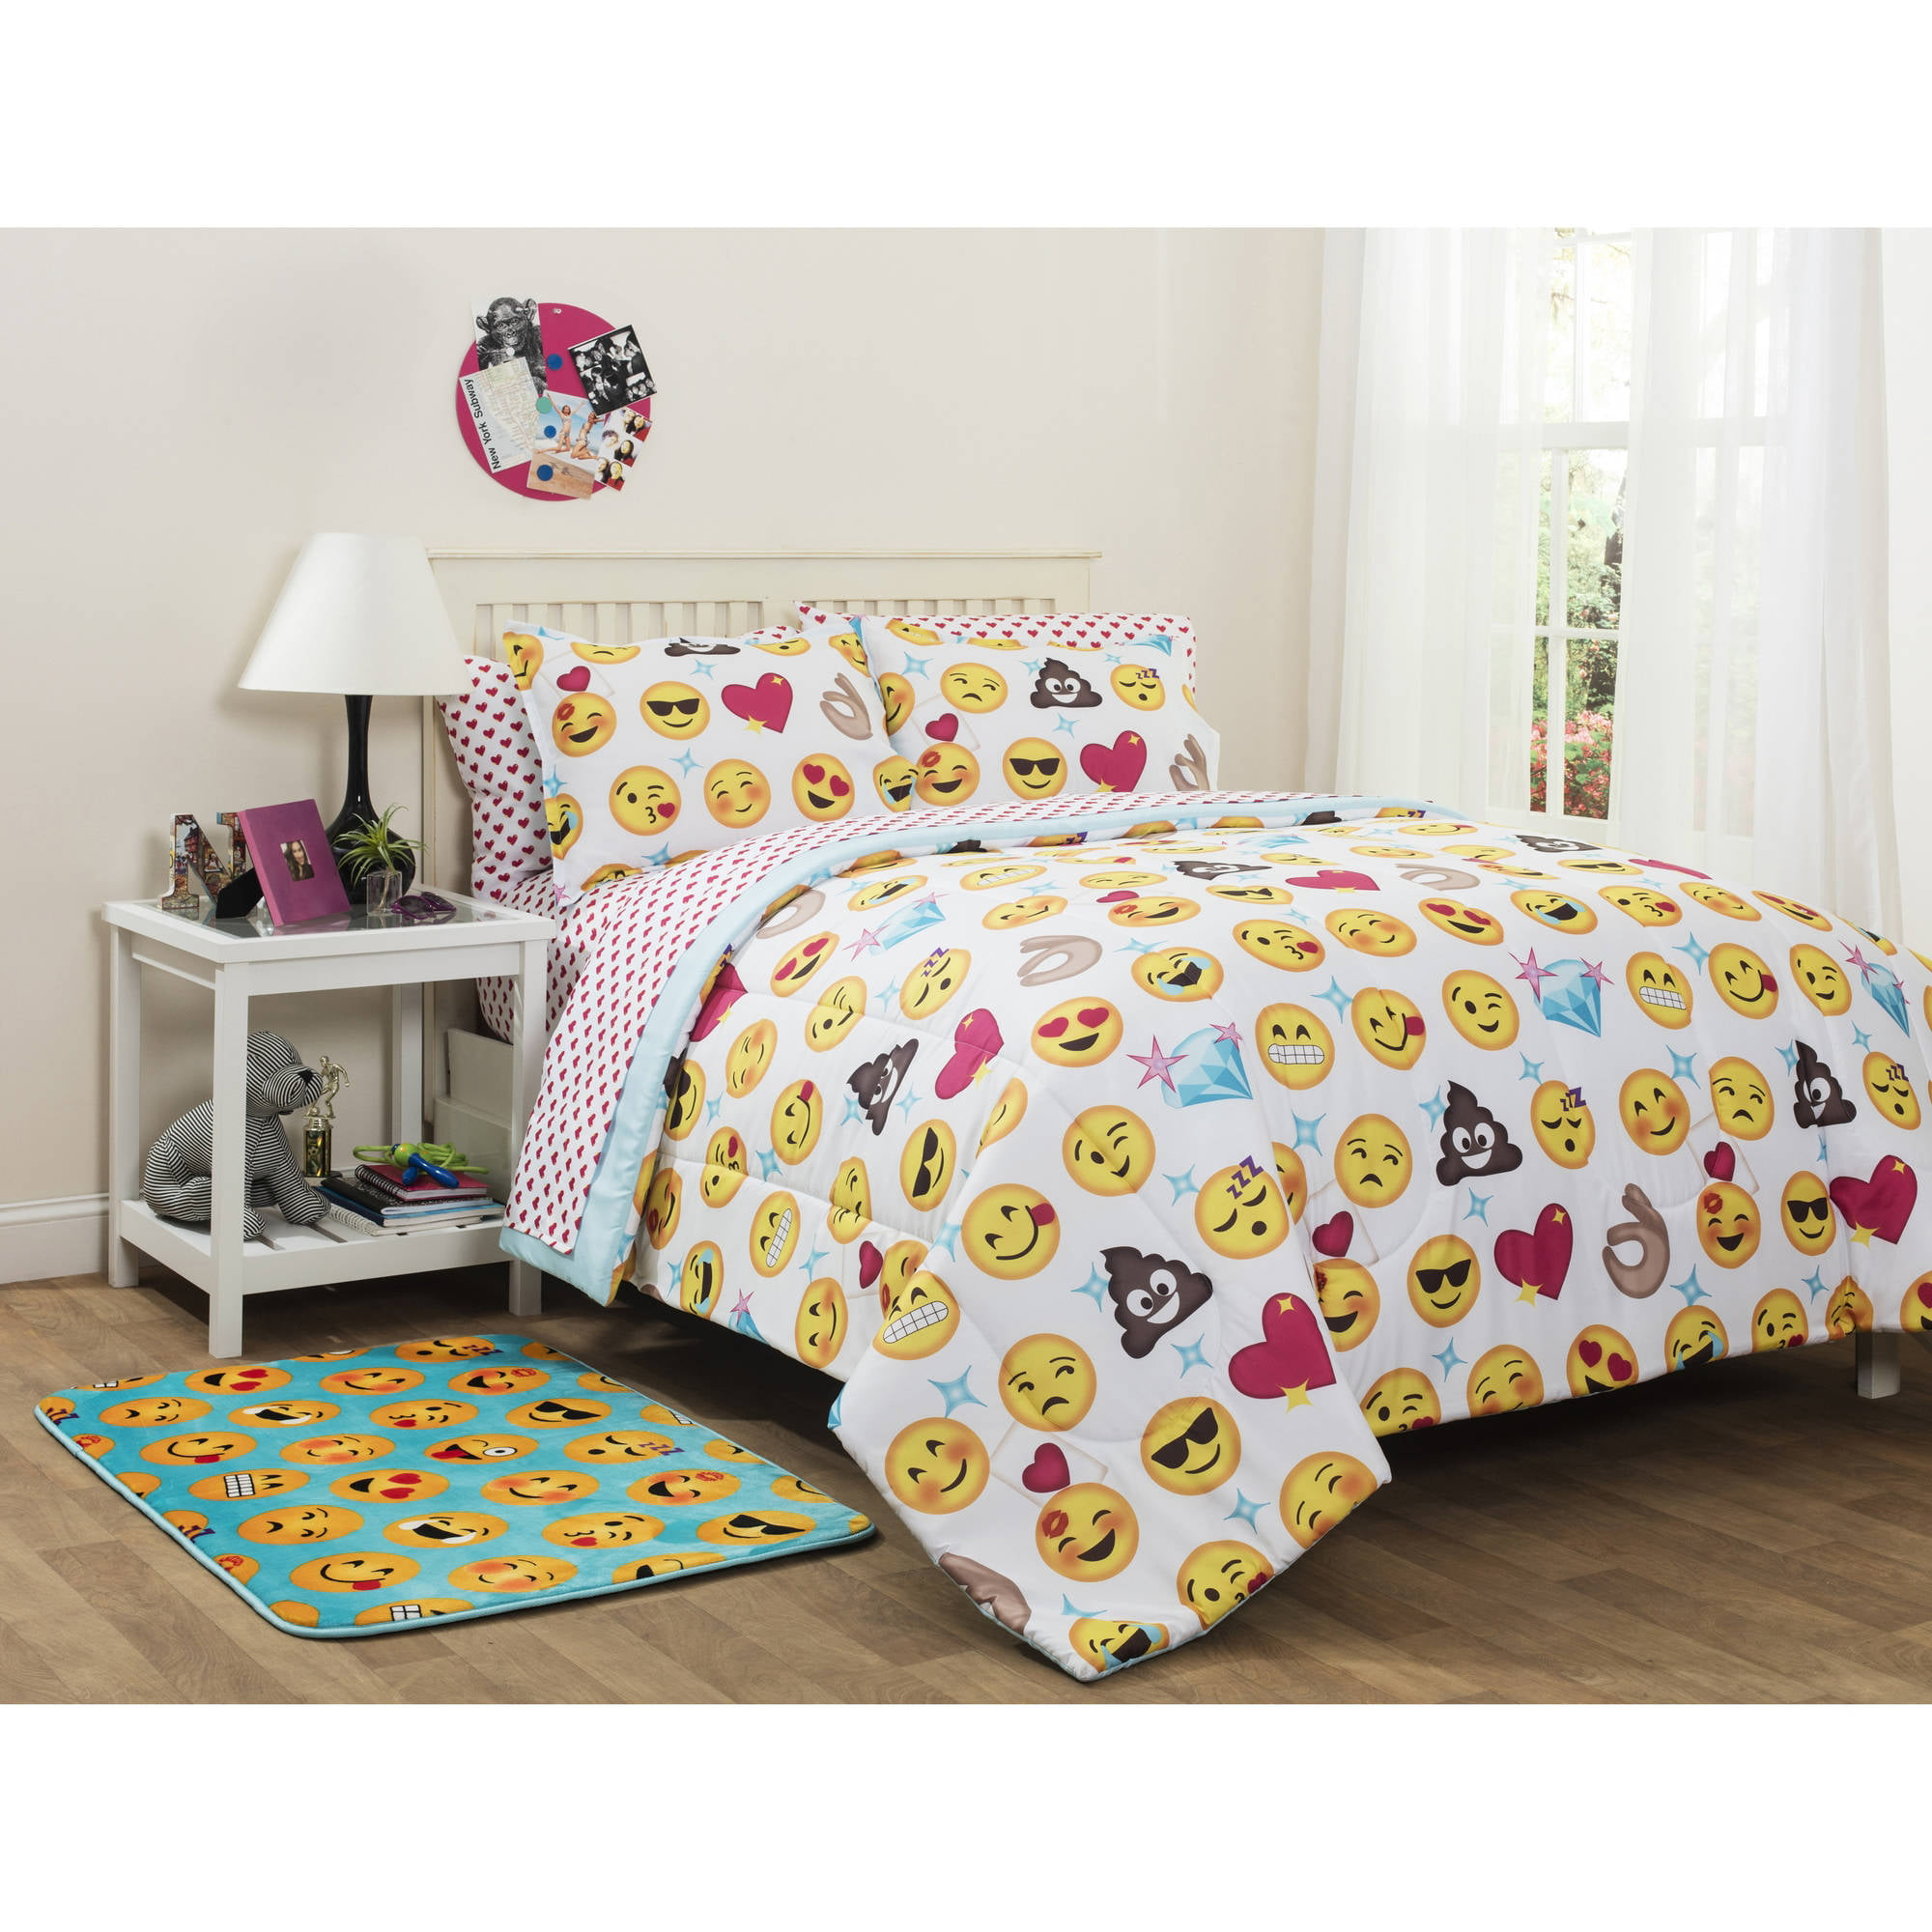 Perfect Emoji Pals Bed In A Bag Bedding Set   Walmart.com